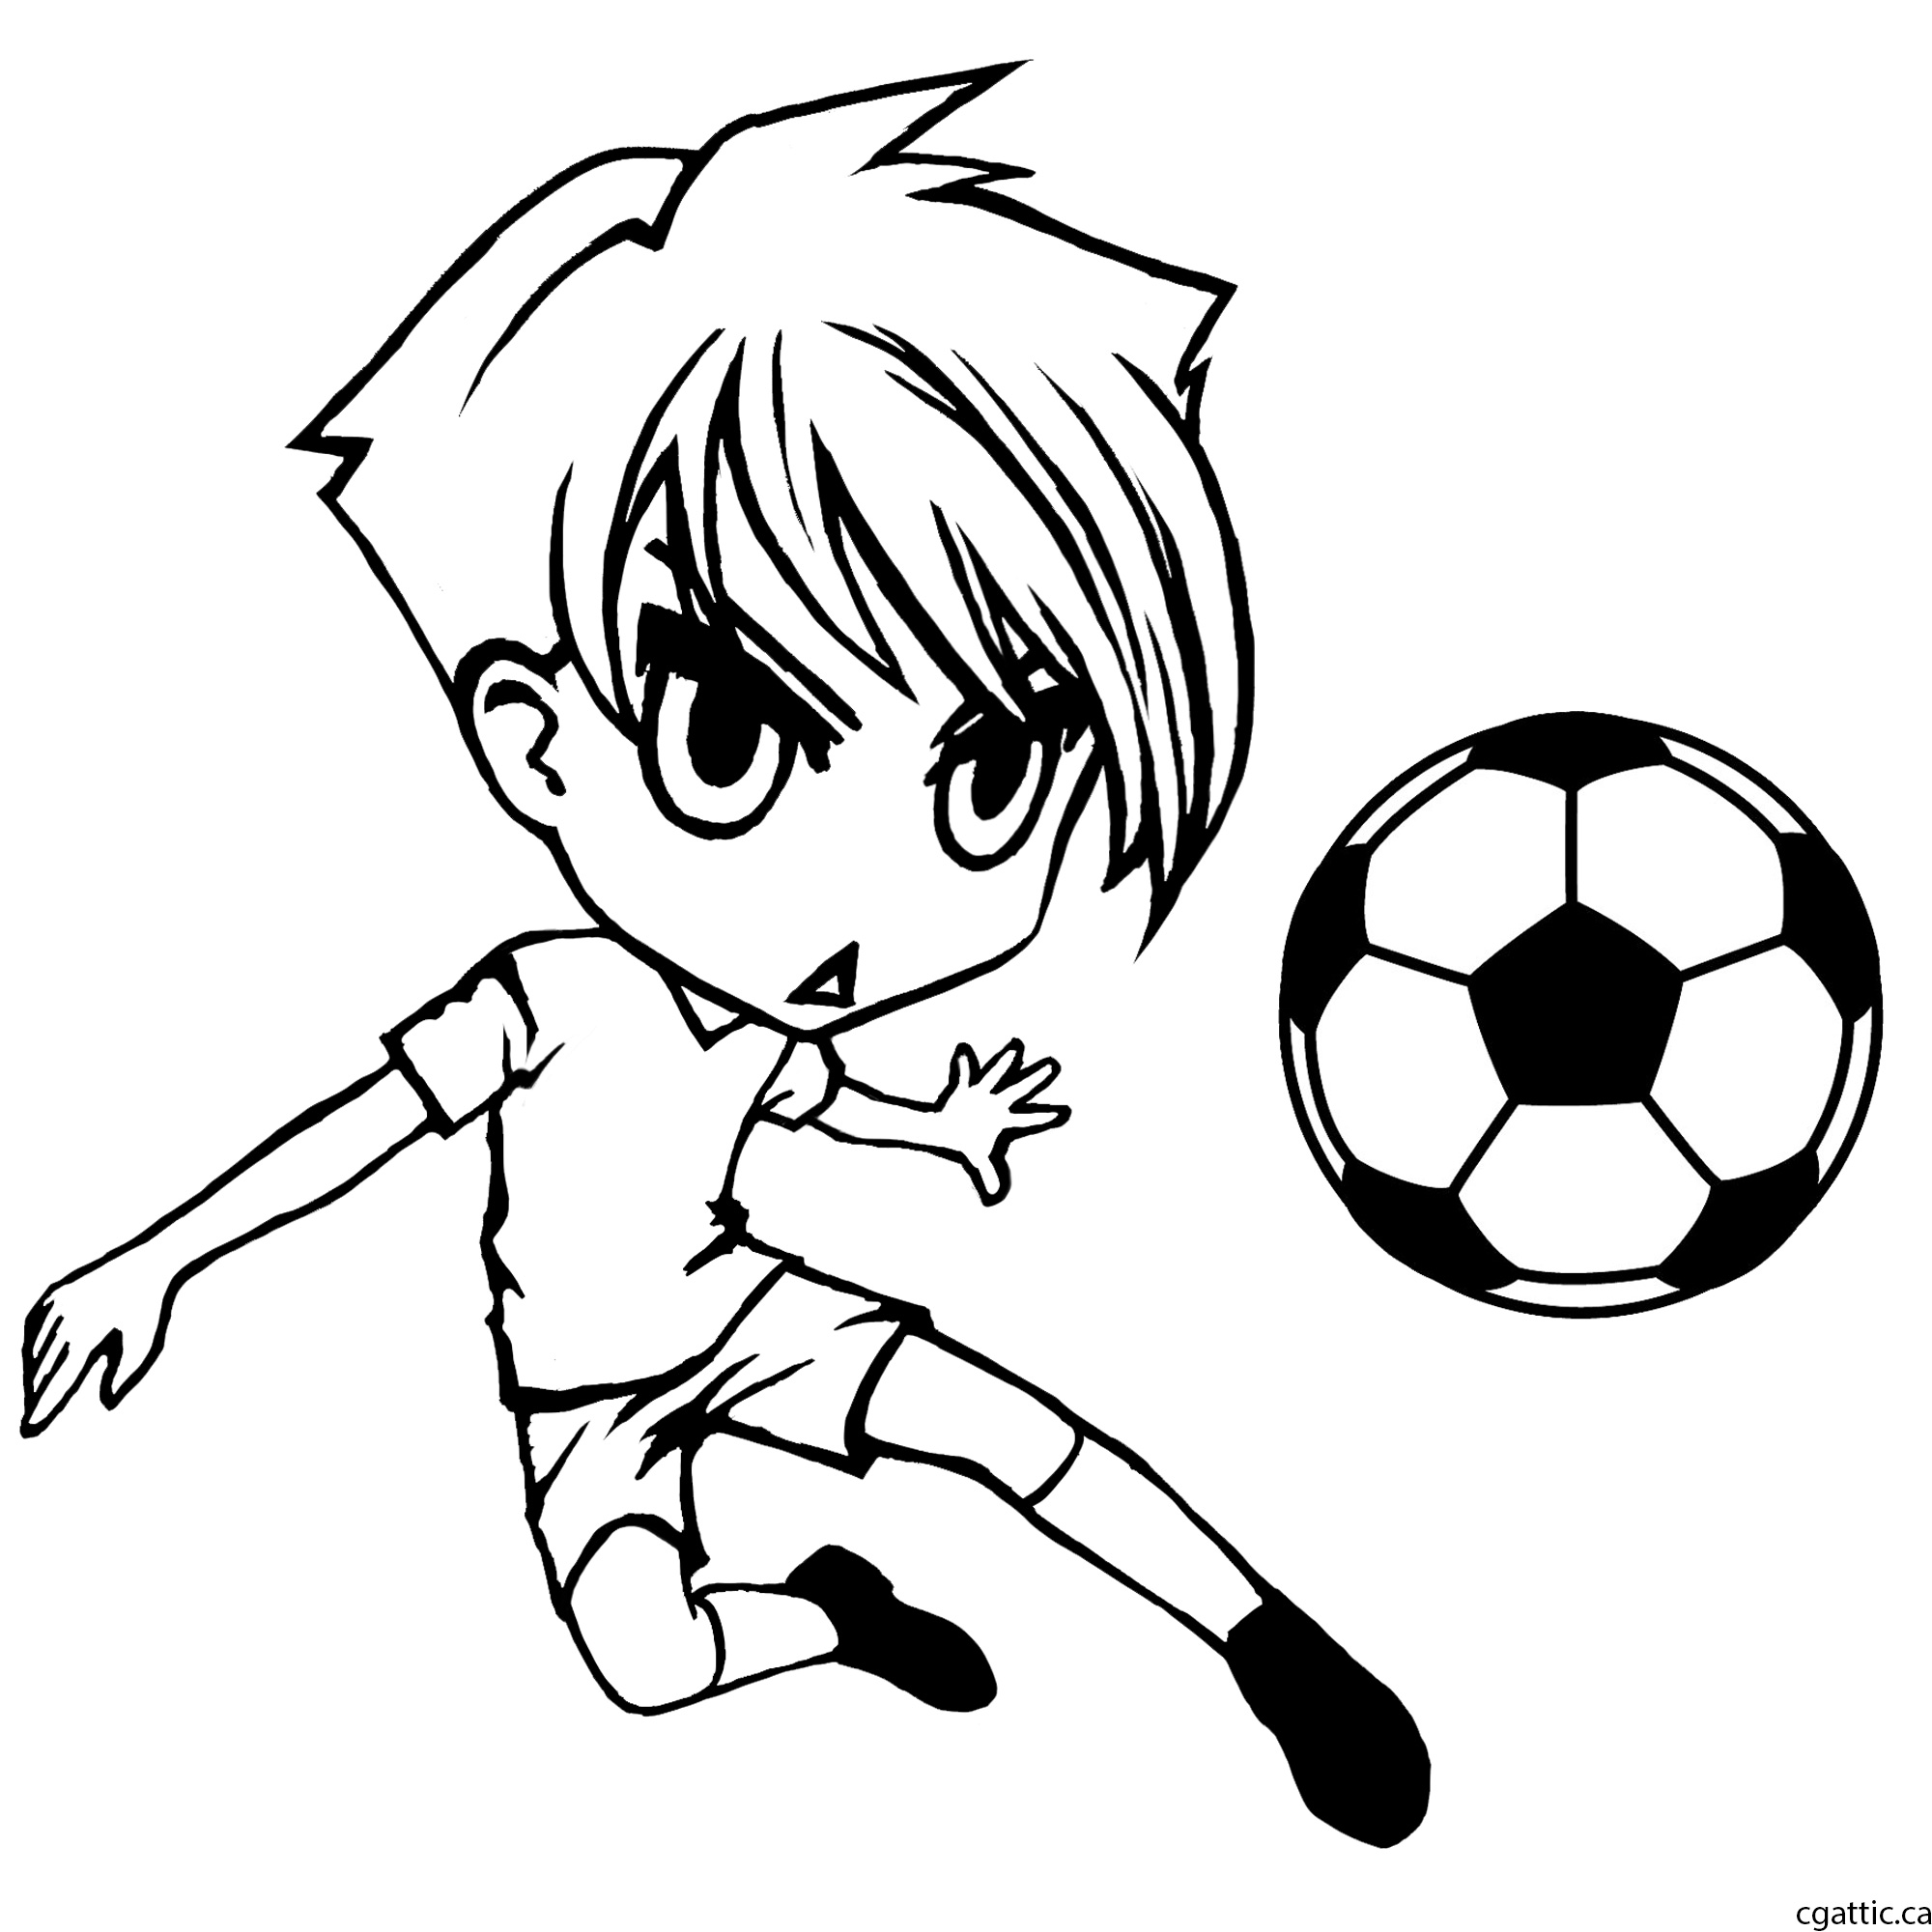 2000x2000 Cartoon Soccer Player Drawing In 4 Steps With Photoshop Soccer